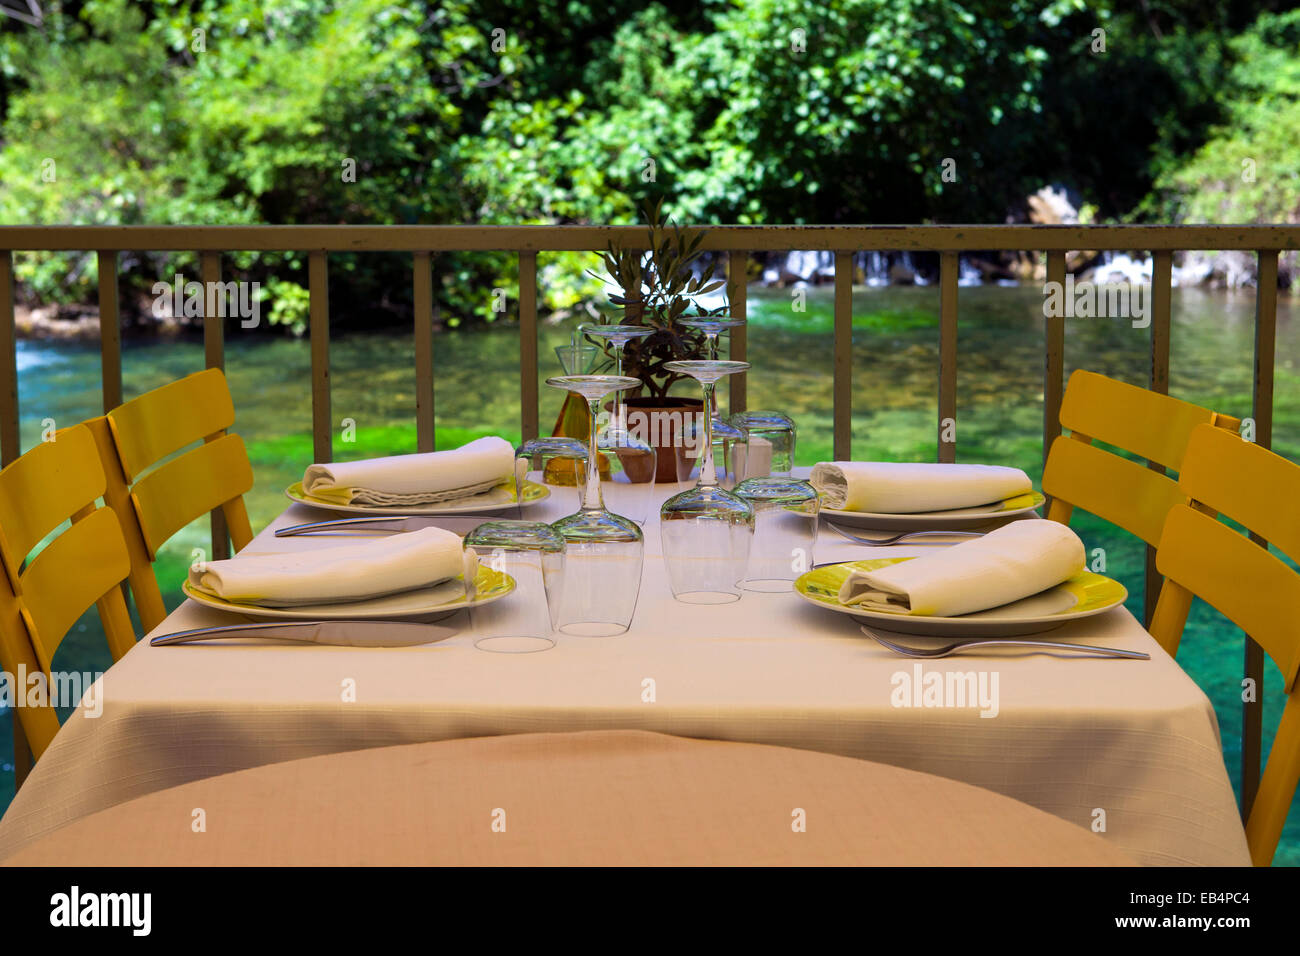 Table de restaurant au bord de la rivière Photo Stock